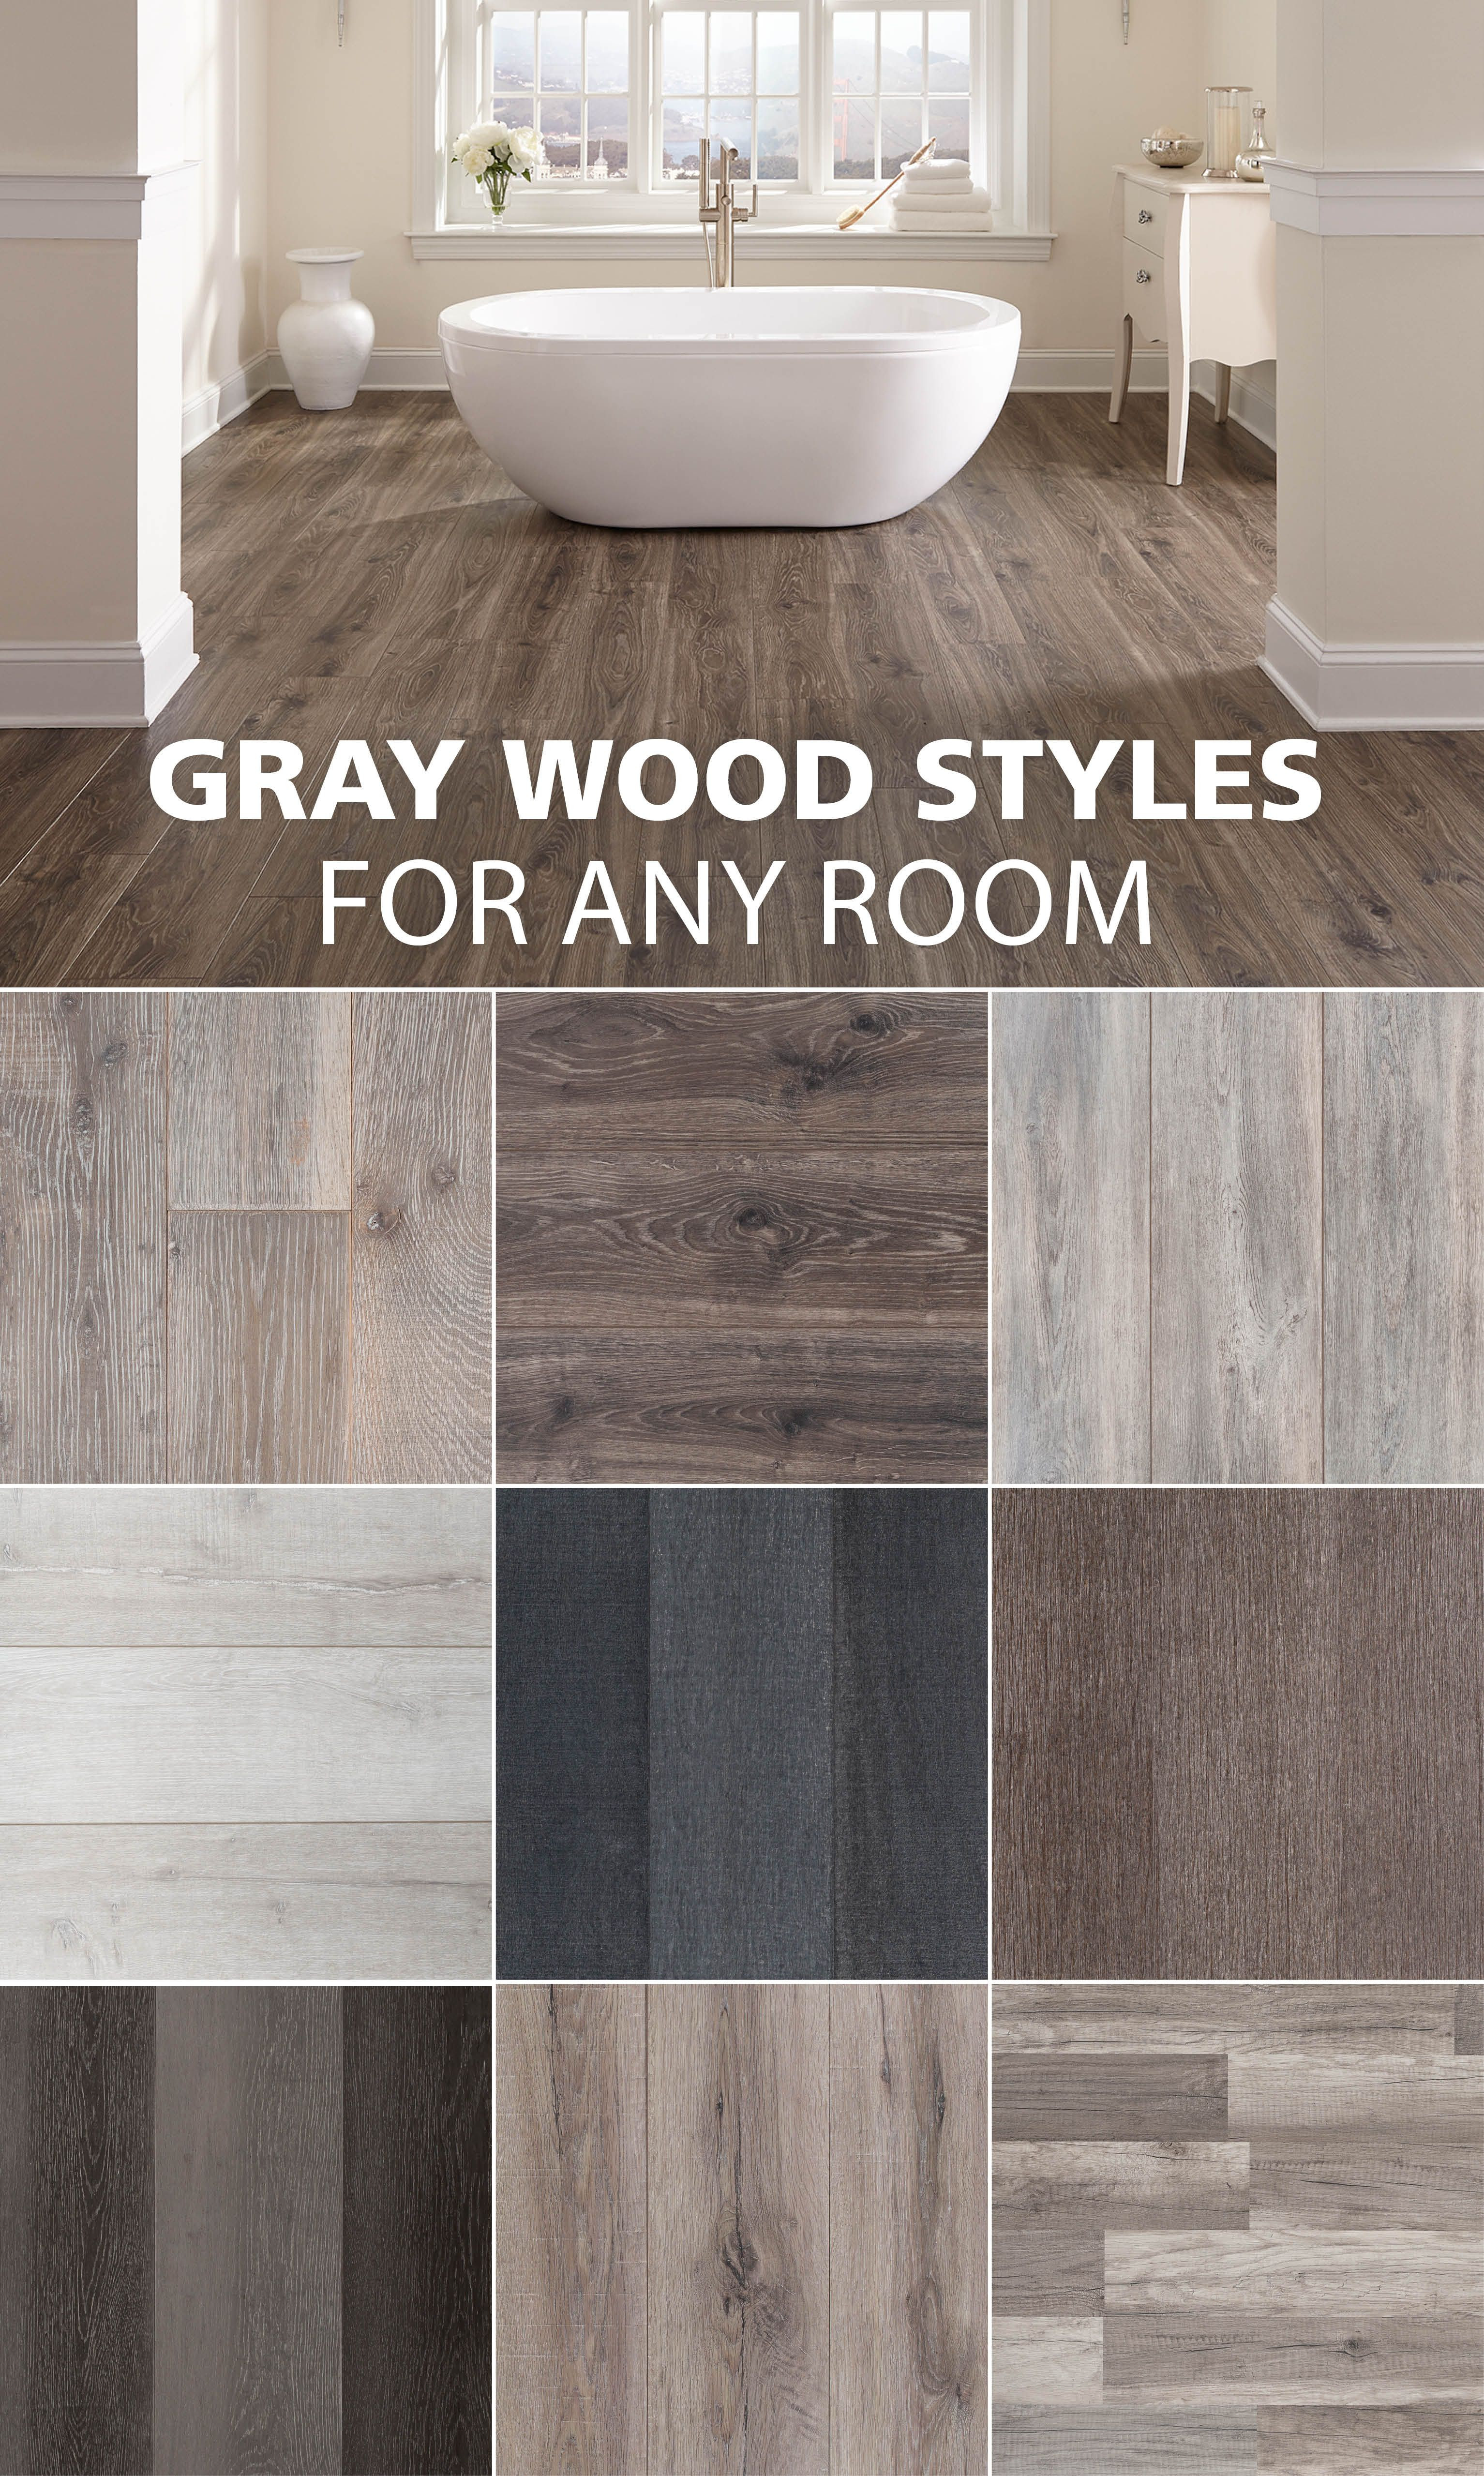 mohawk hardwood floor cleaner reviews of here are some of our favorite gray wood look styles home decor within here are some of our favorite gray wood look styles gray hardwood floors light